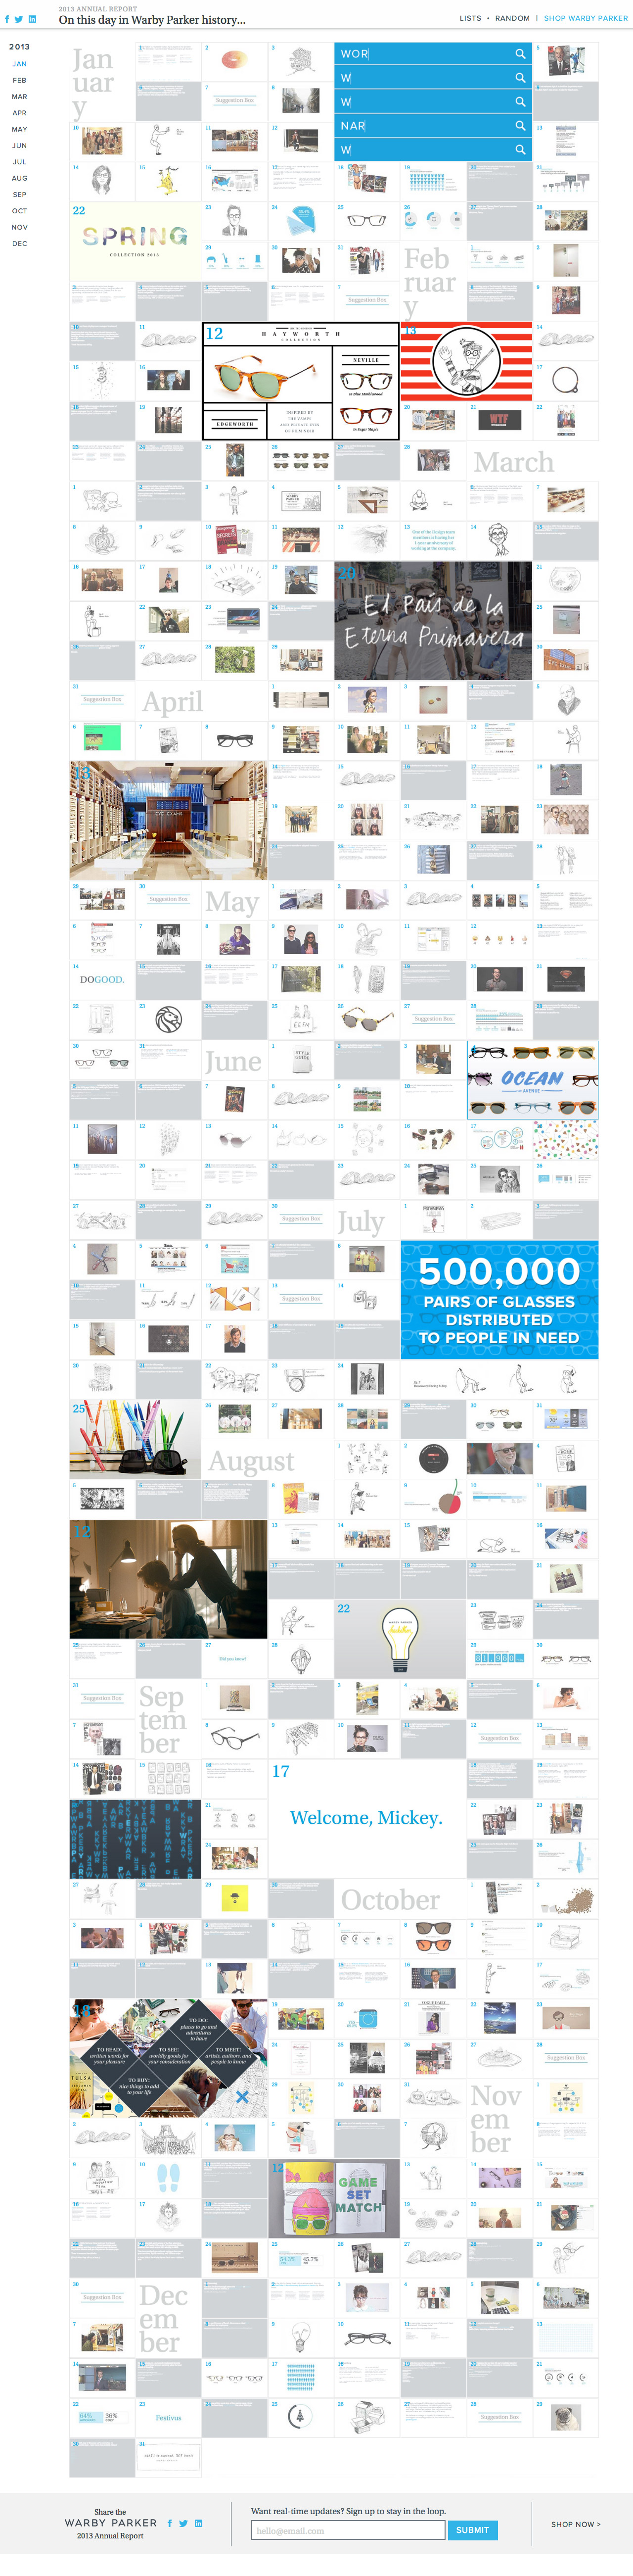 Warby Parker 2013 Annual Report Website Screenshot